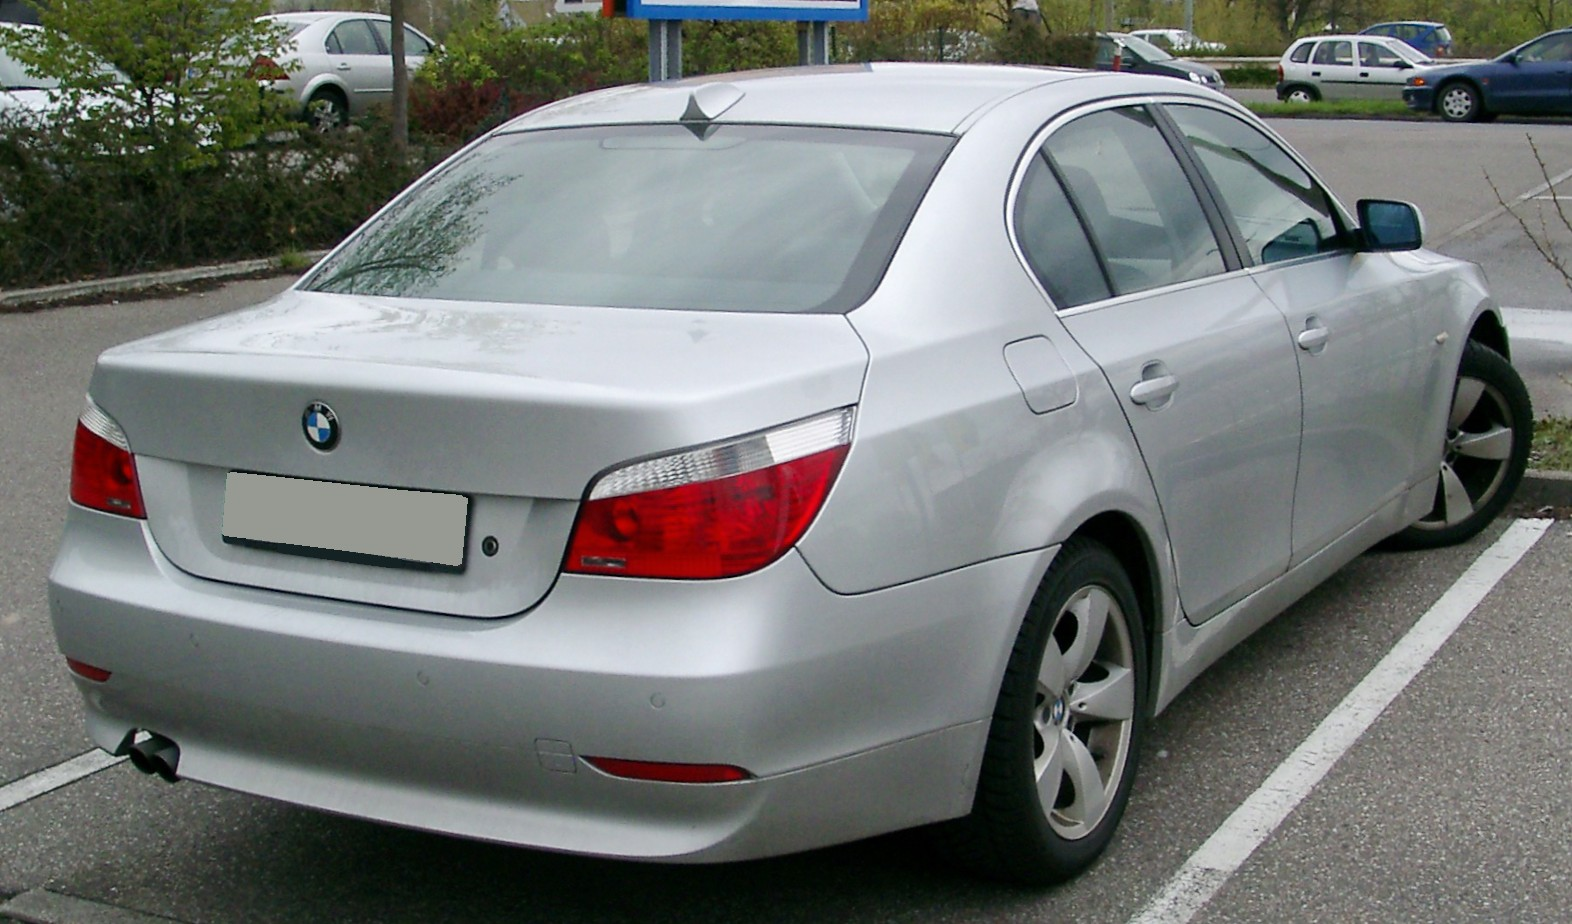 Bmw 535I Xdrive >> File:BMW E60 rear 20080417.jpg - Wikimedia Commons